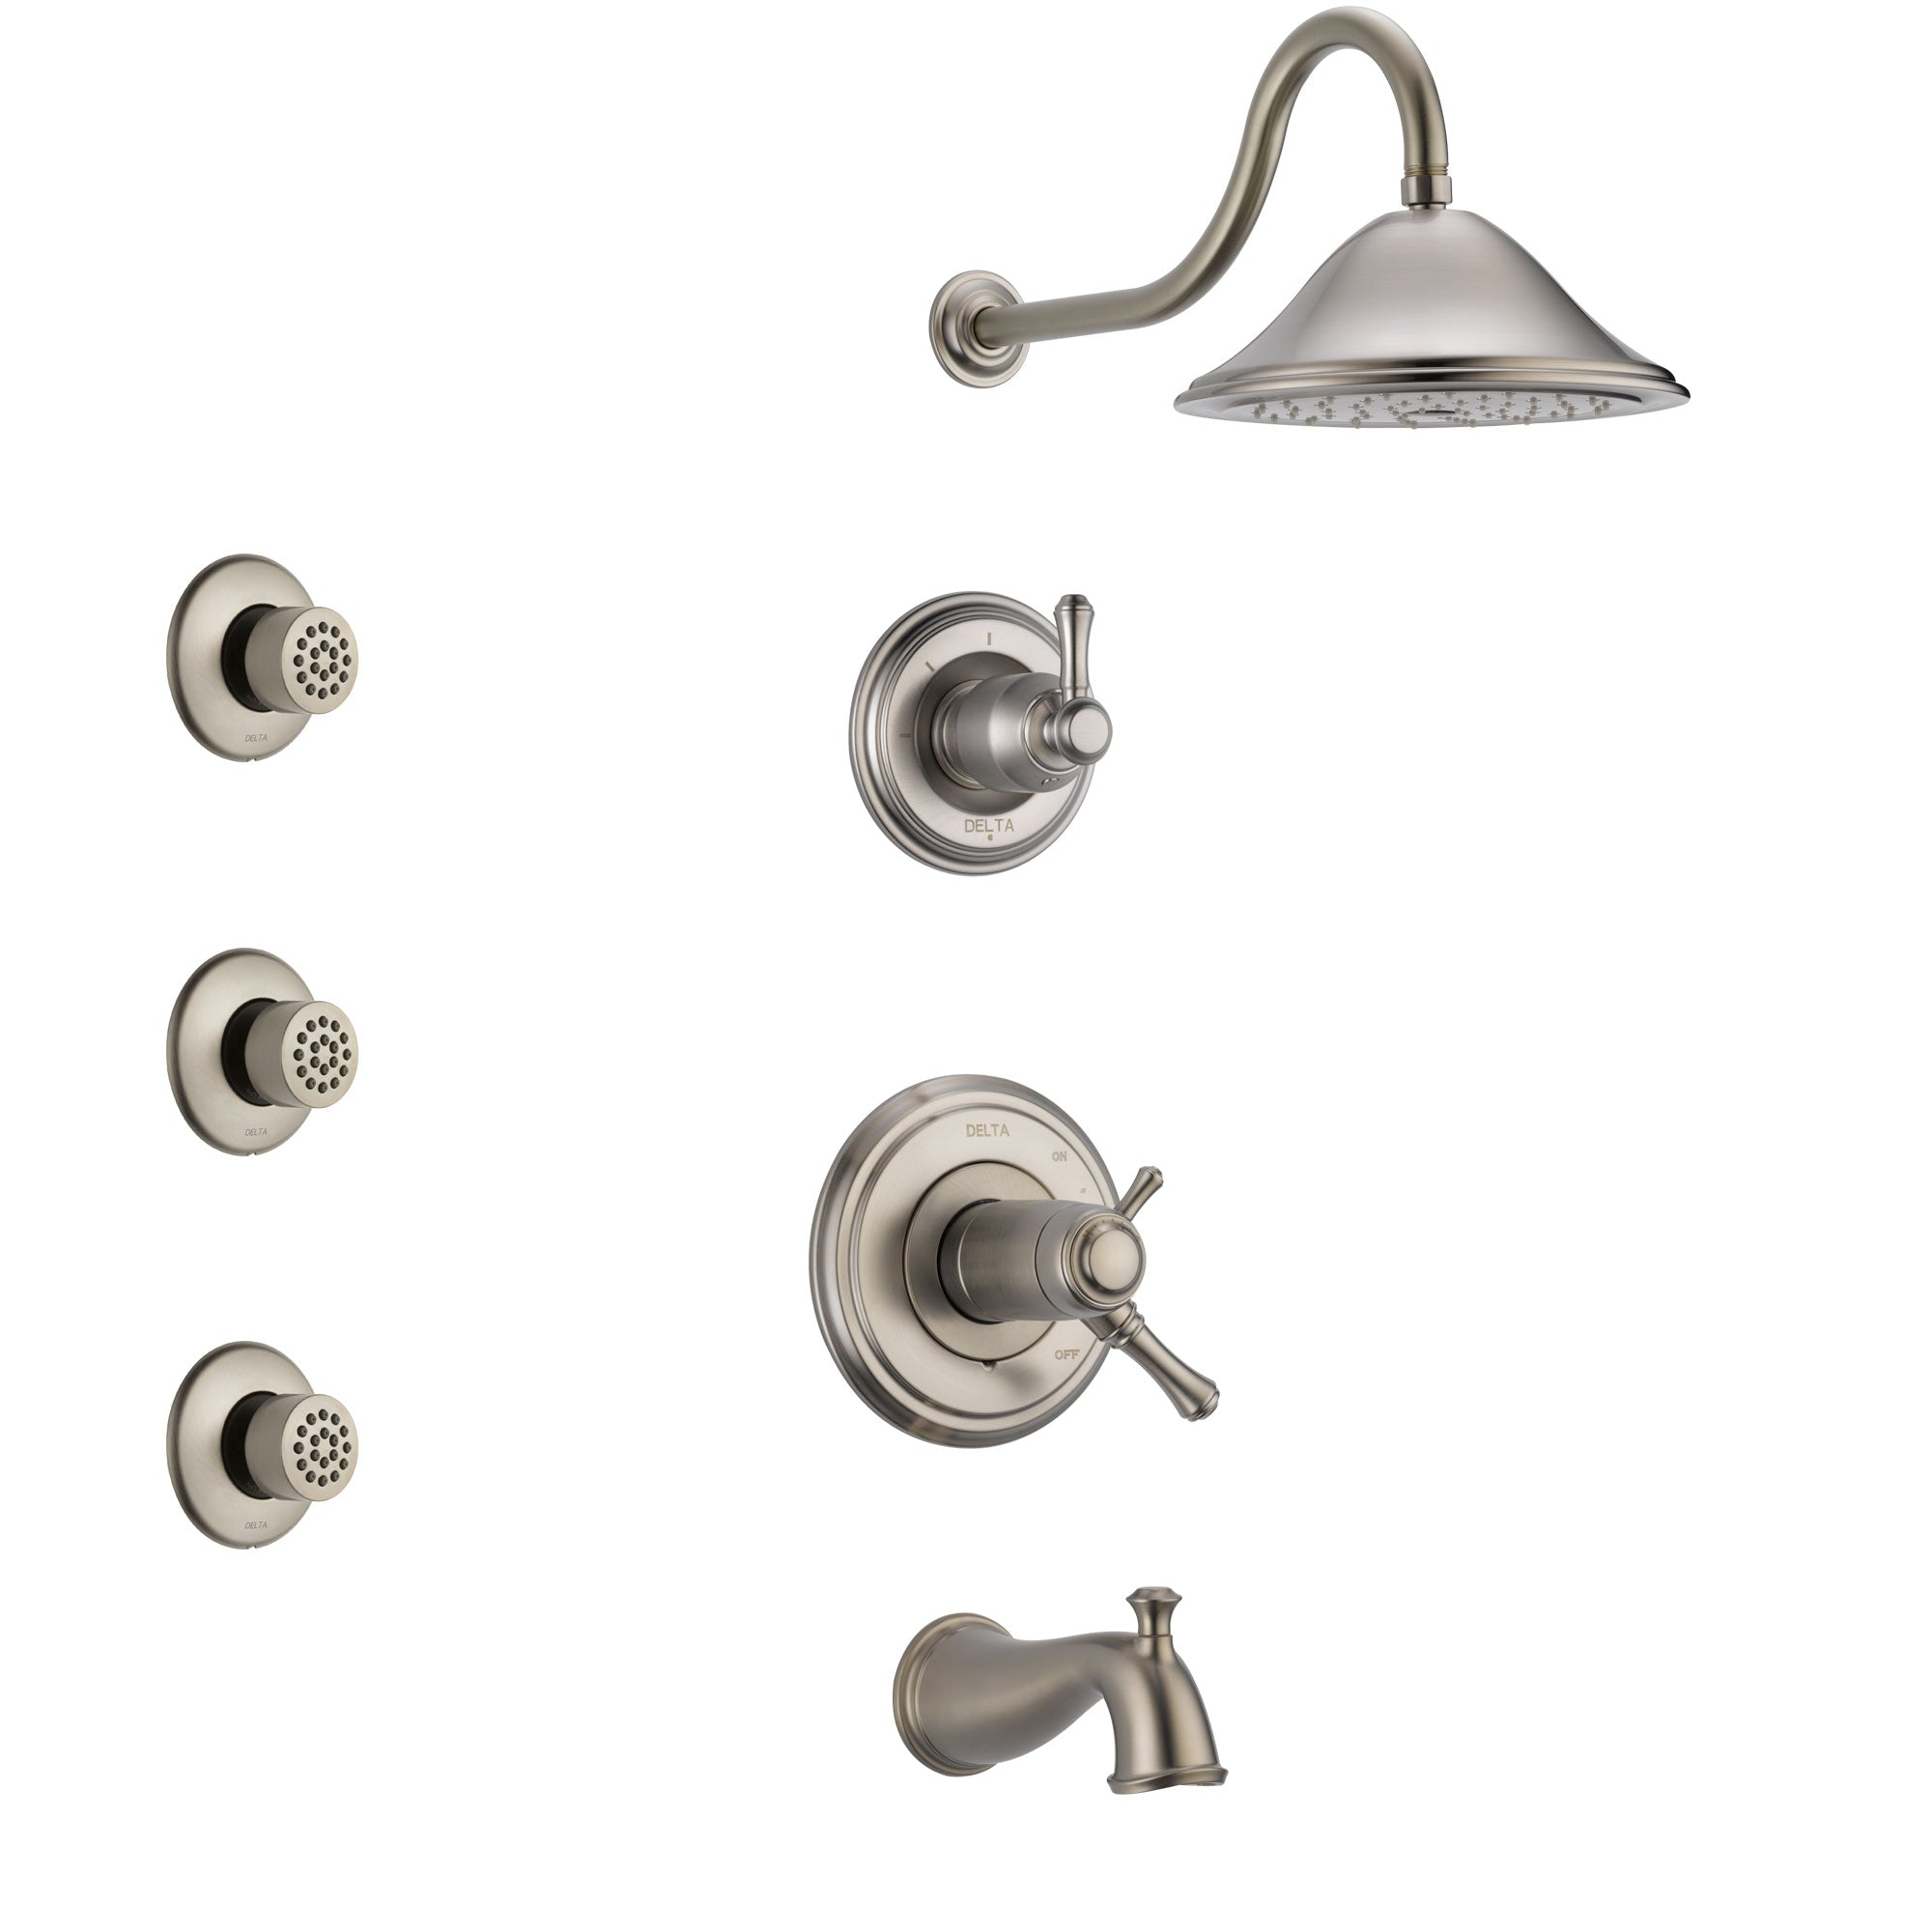 Delta Cassidy Stainless Steel Finish Tub and Shower System with Dual Thermostatic Control Handle, Diverter, Showerhead, and 3 Body Sprays SS17T4972SS2